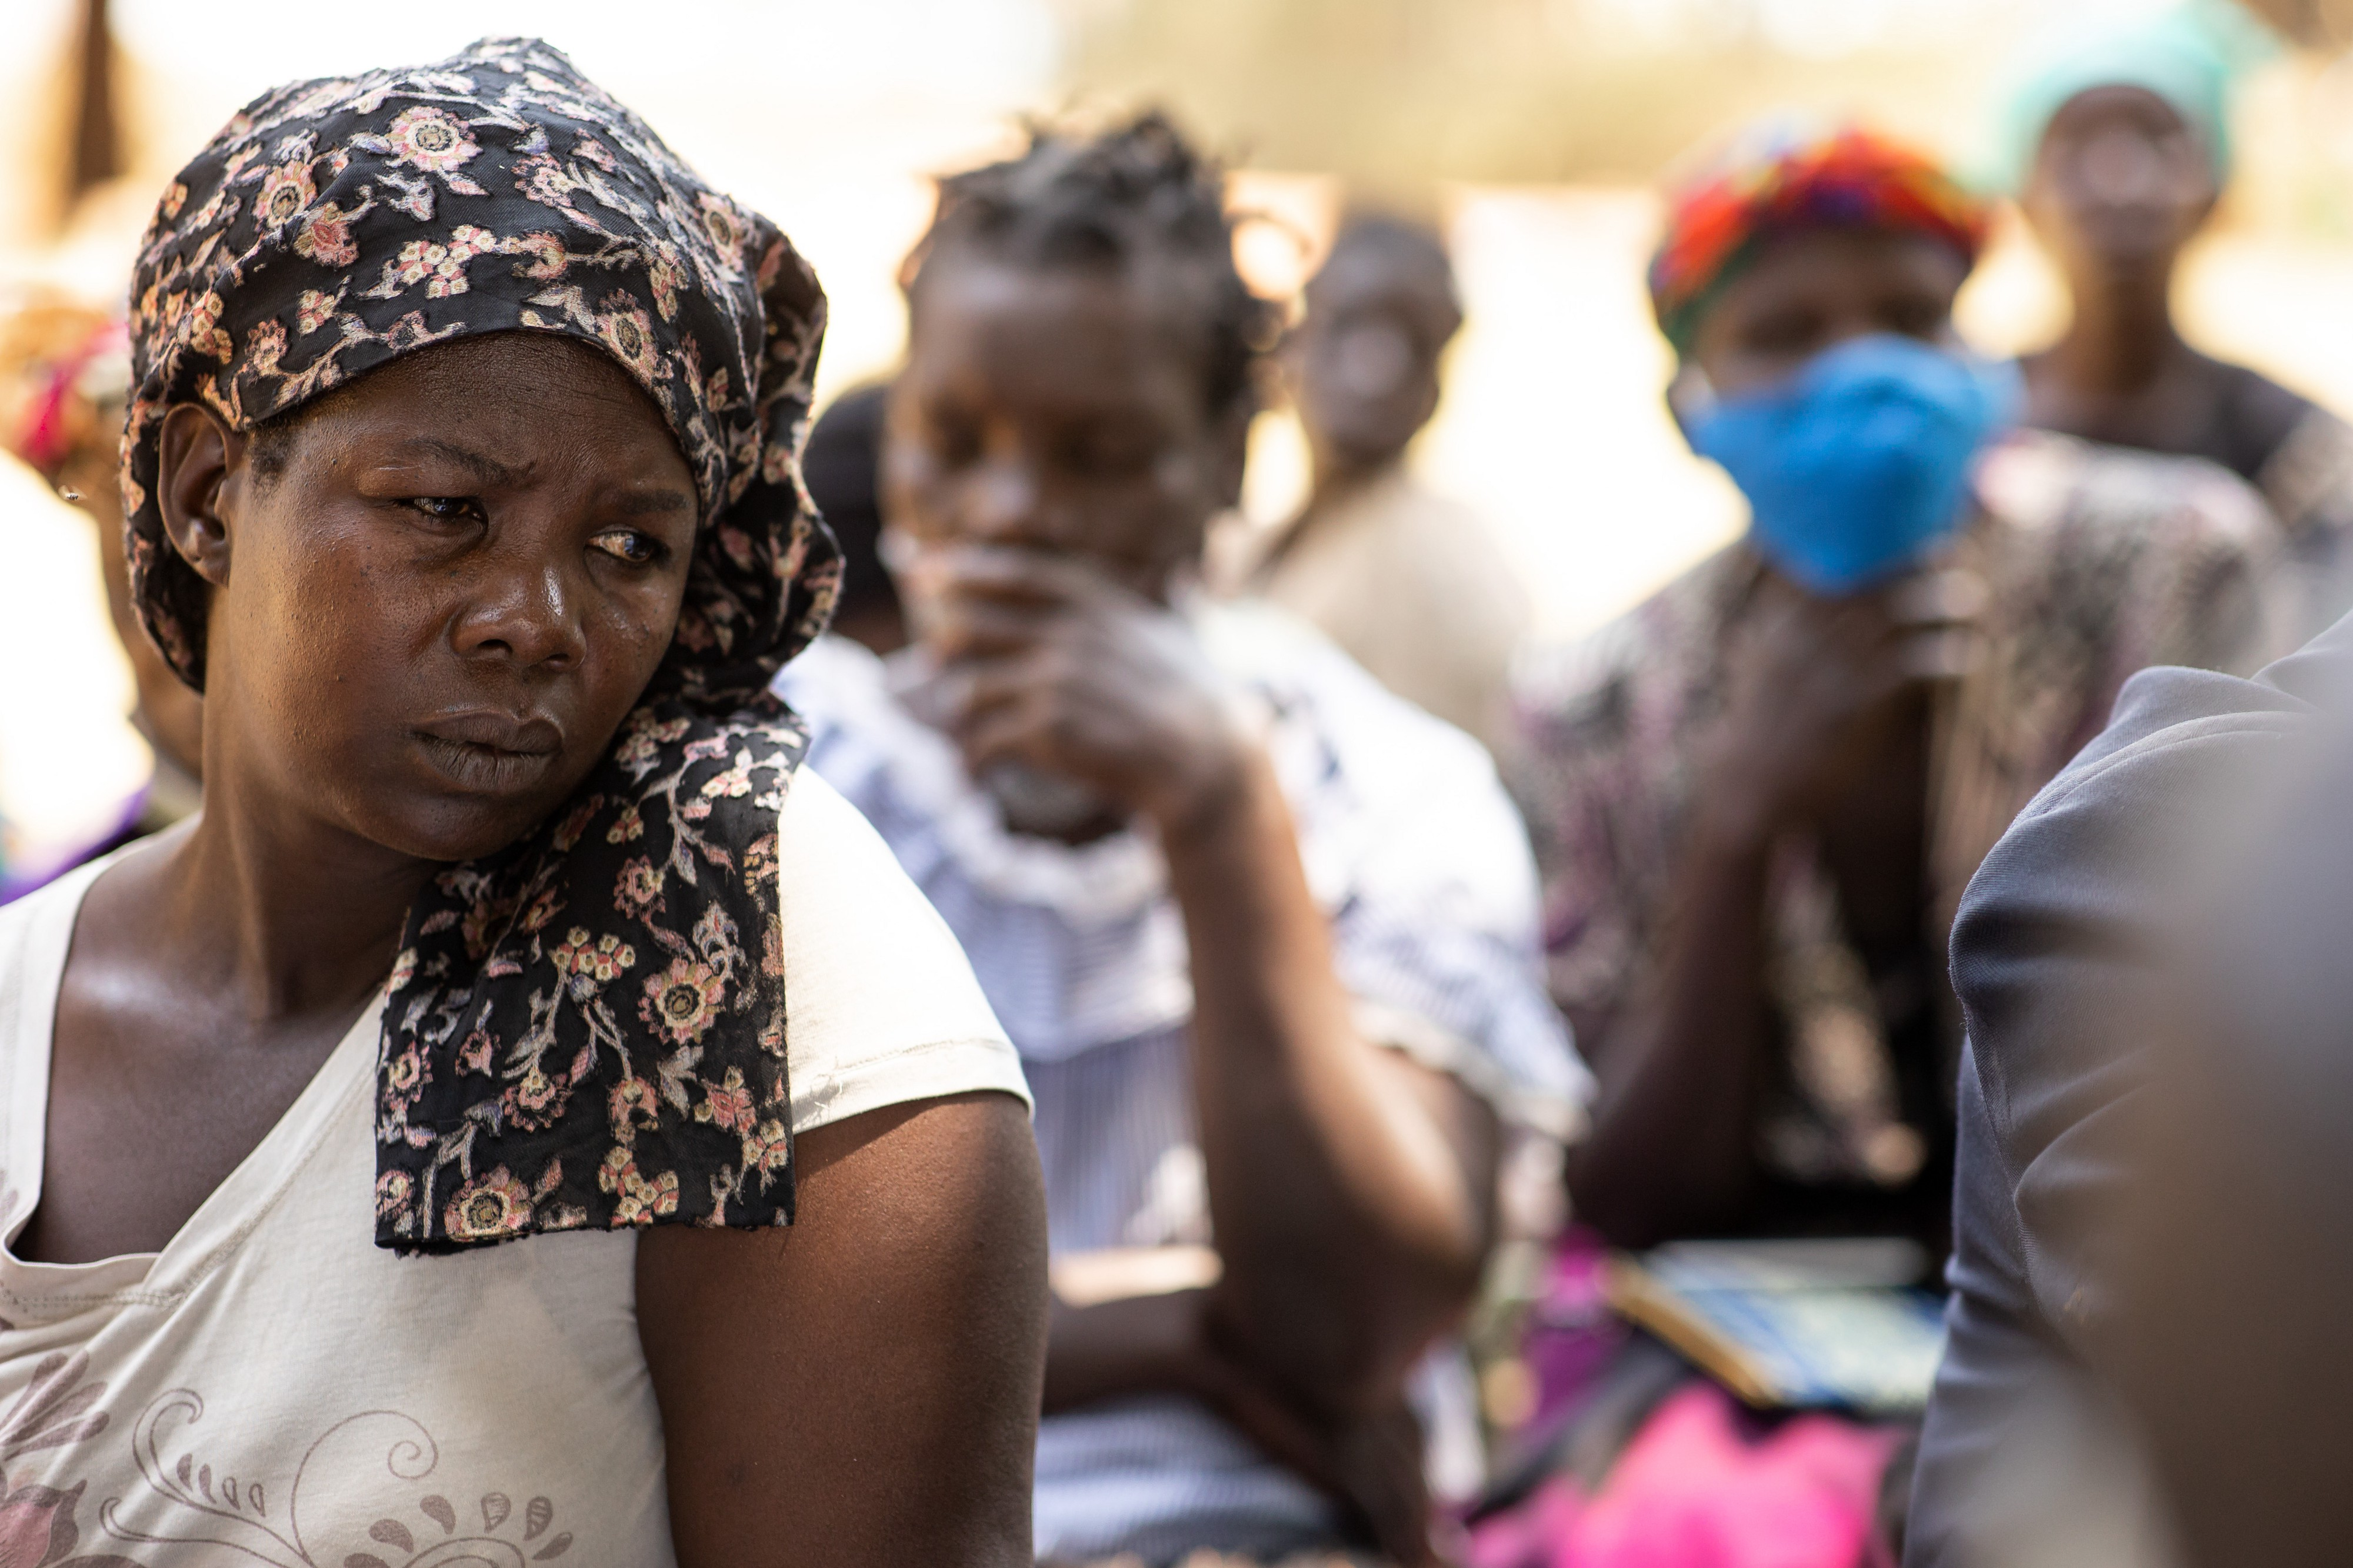 A Ugandan woman looks mournfully to her left, while sitting with a group of people outdoors.